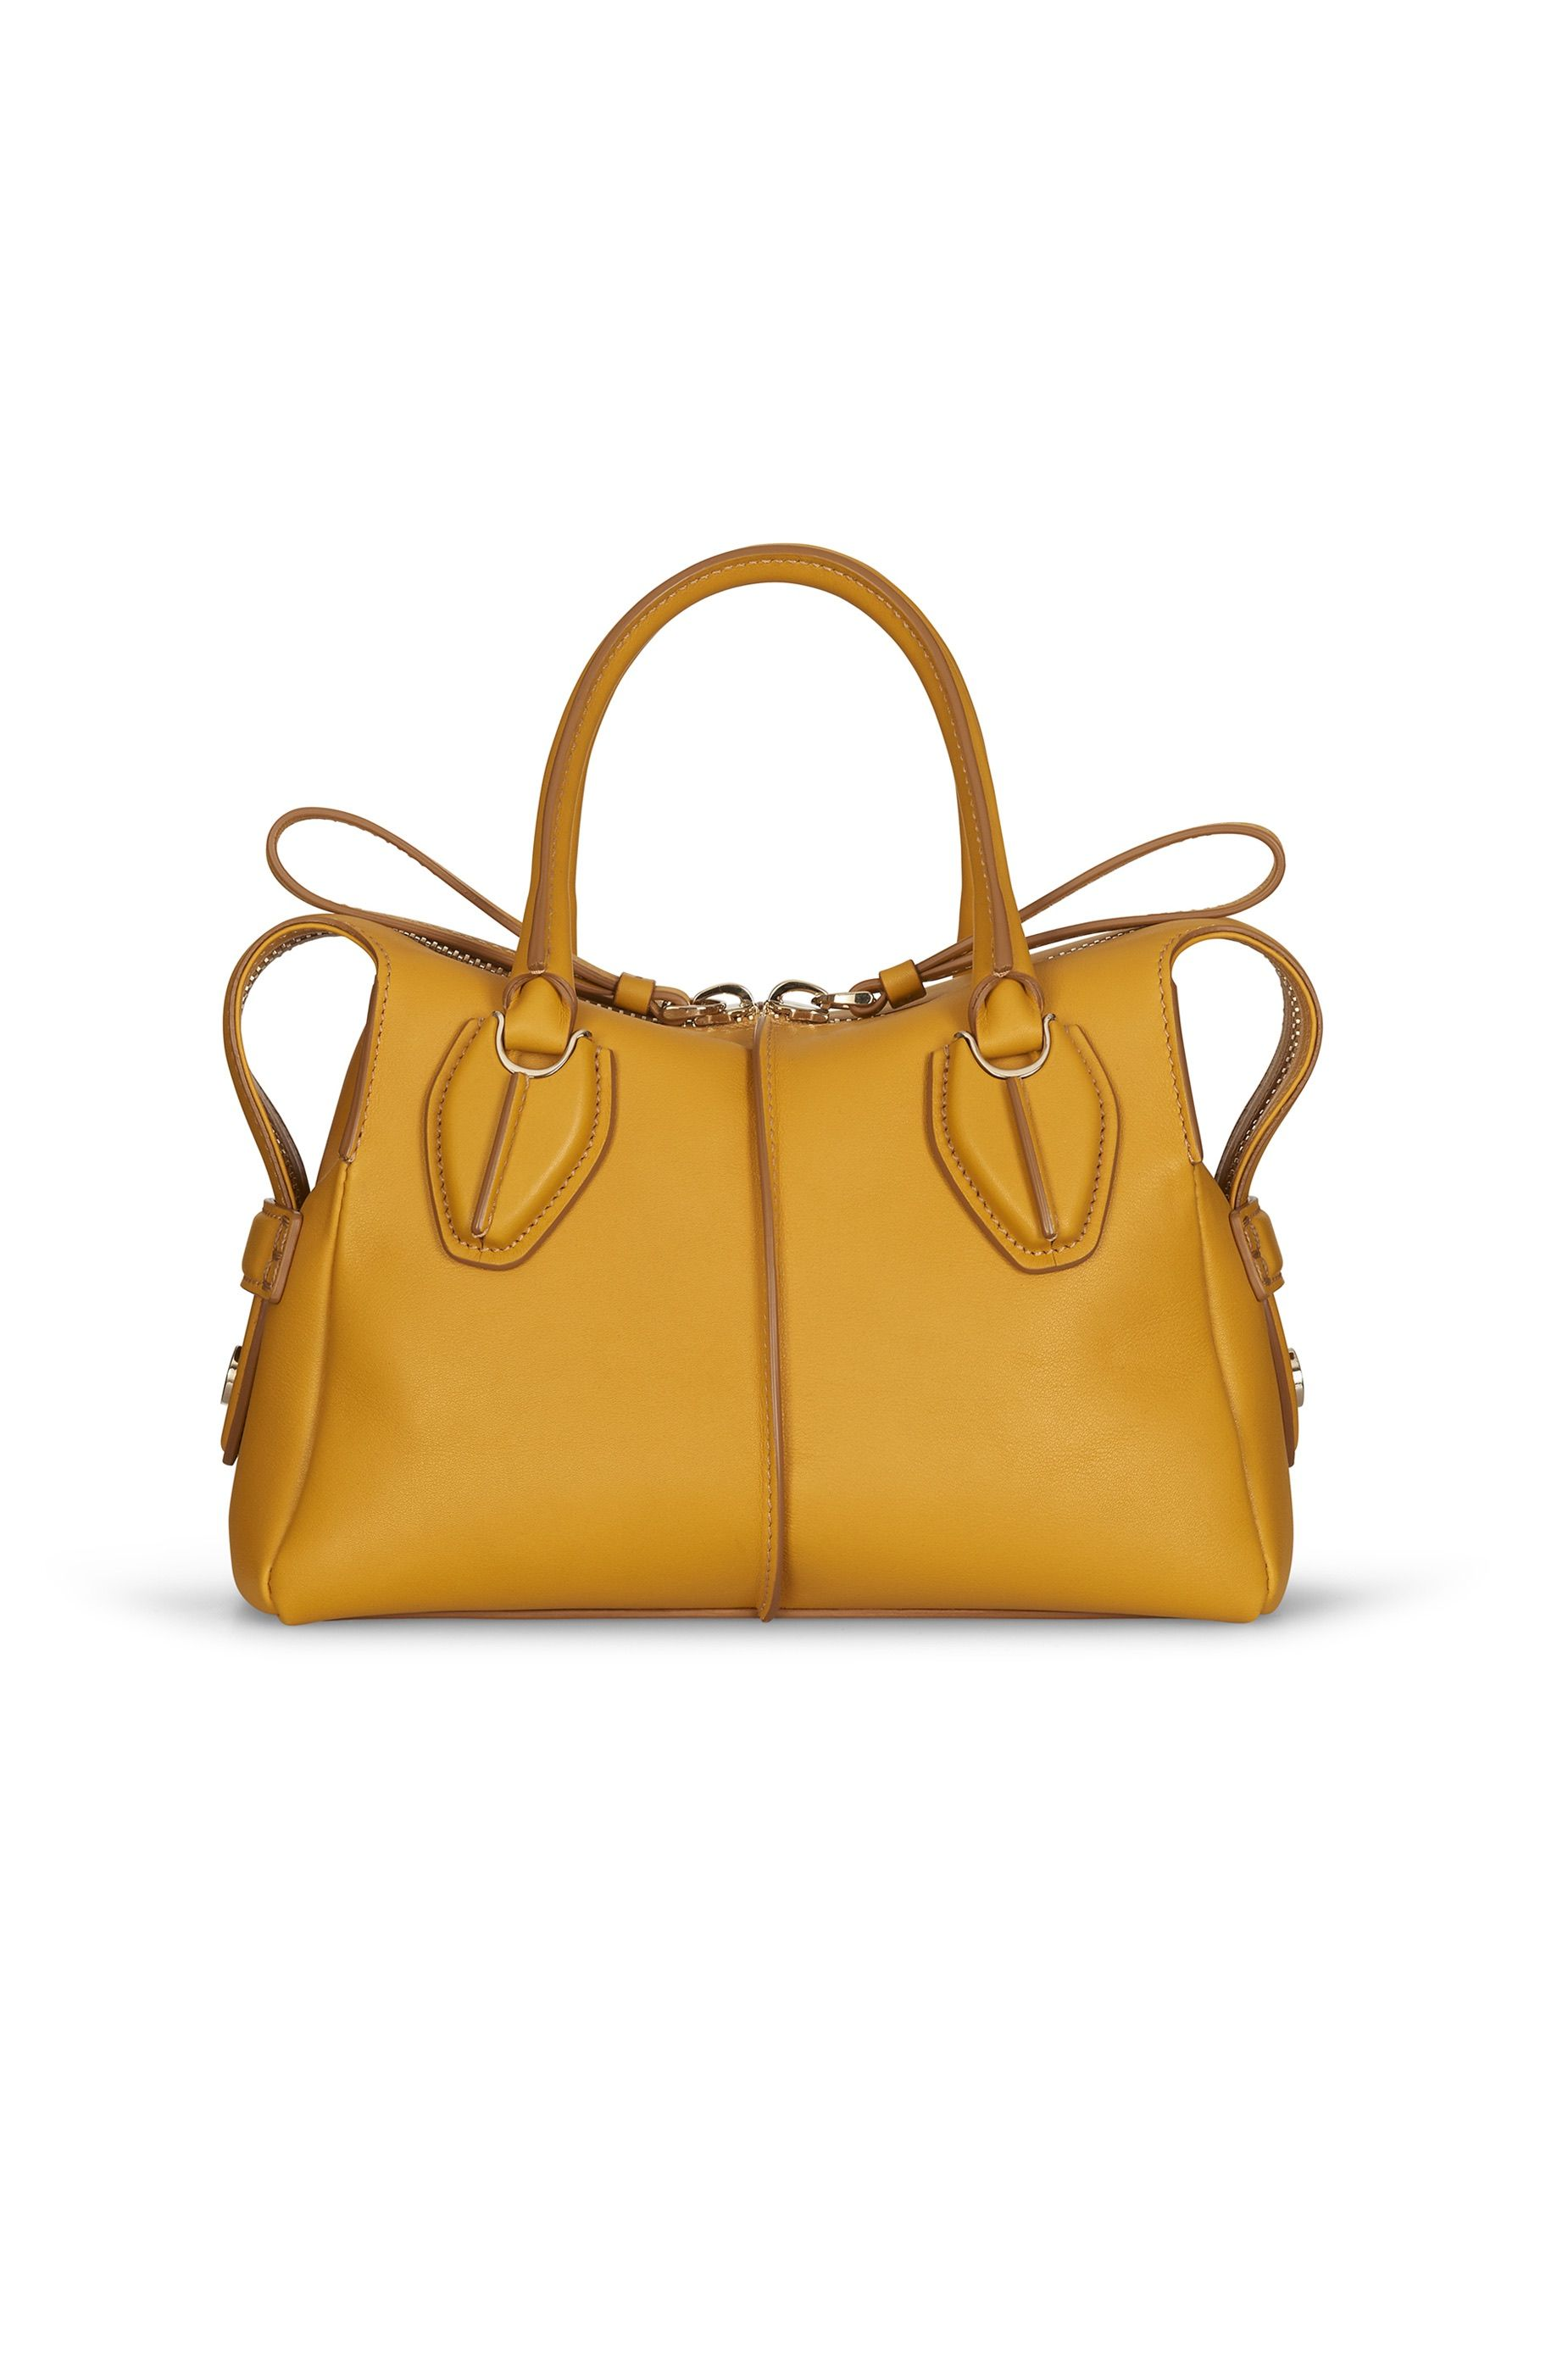 Designer Bags We Want To Splash Our Cash On